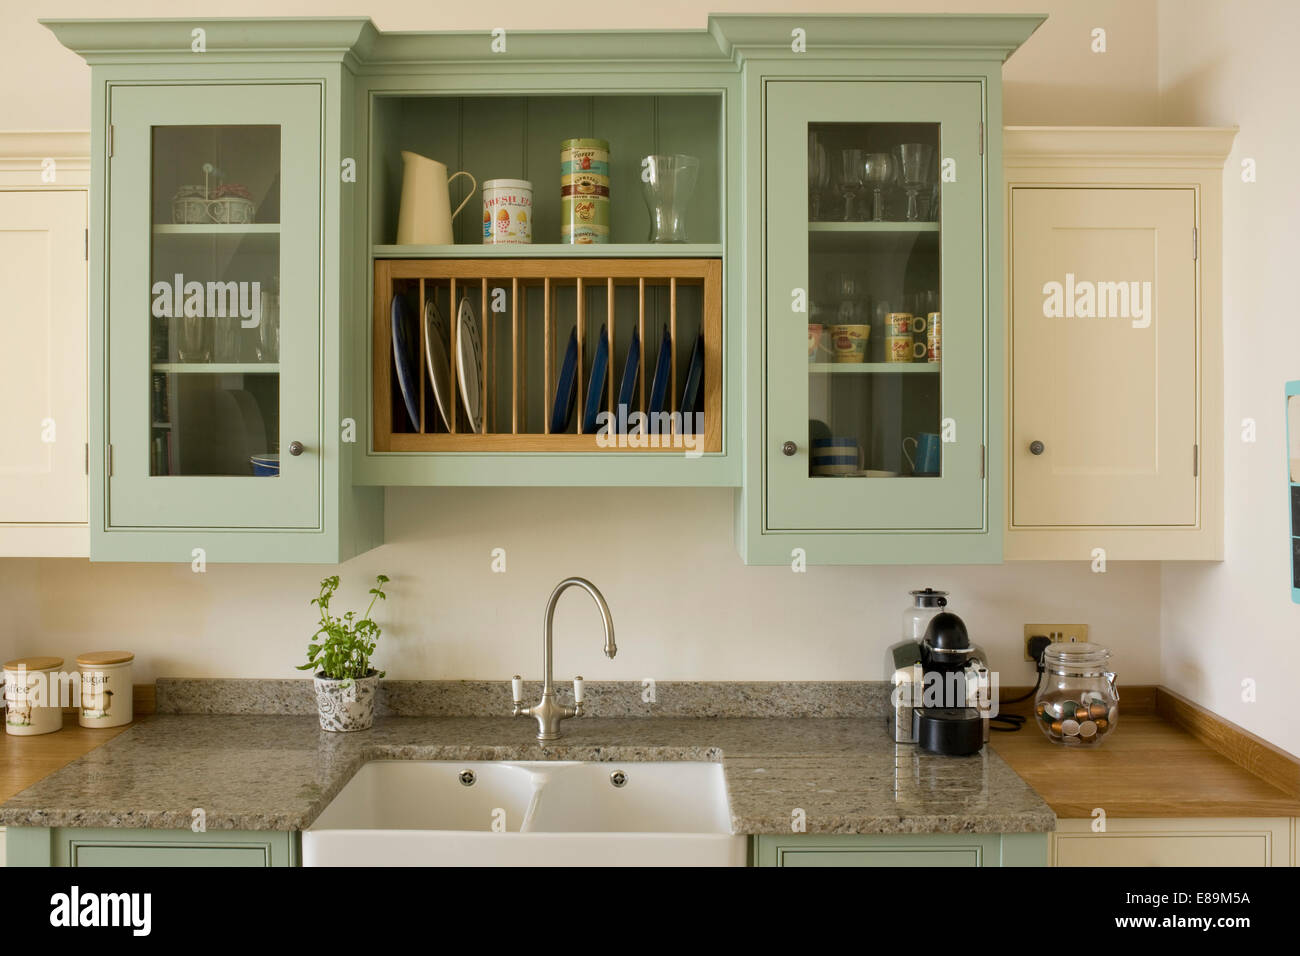 Pale green wall cupboard above double sink in country kitchen Stock ...